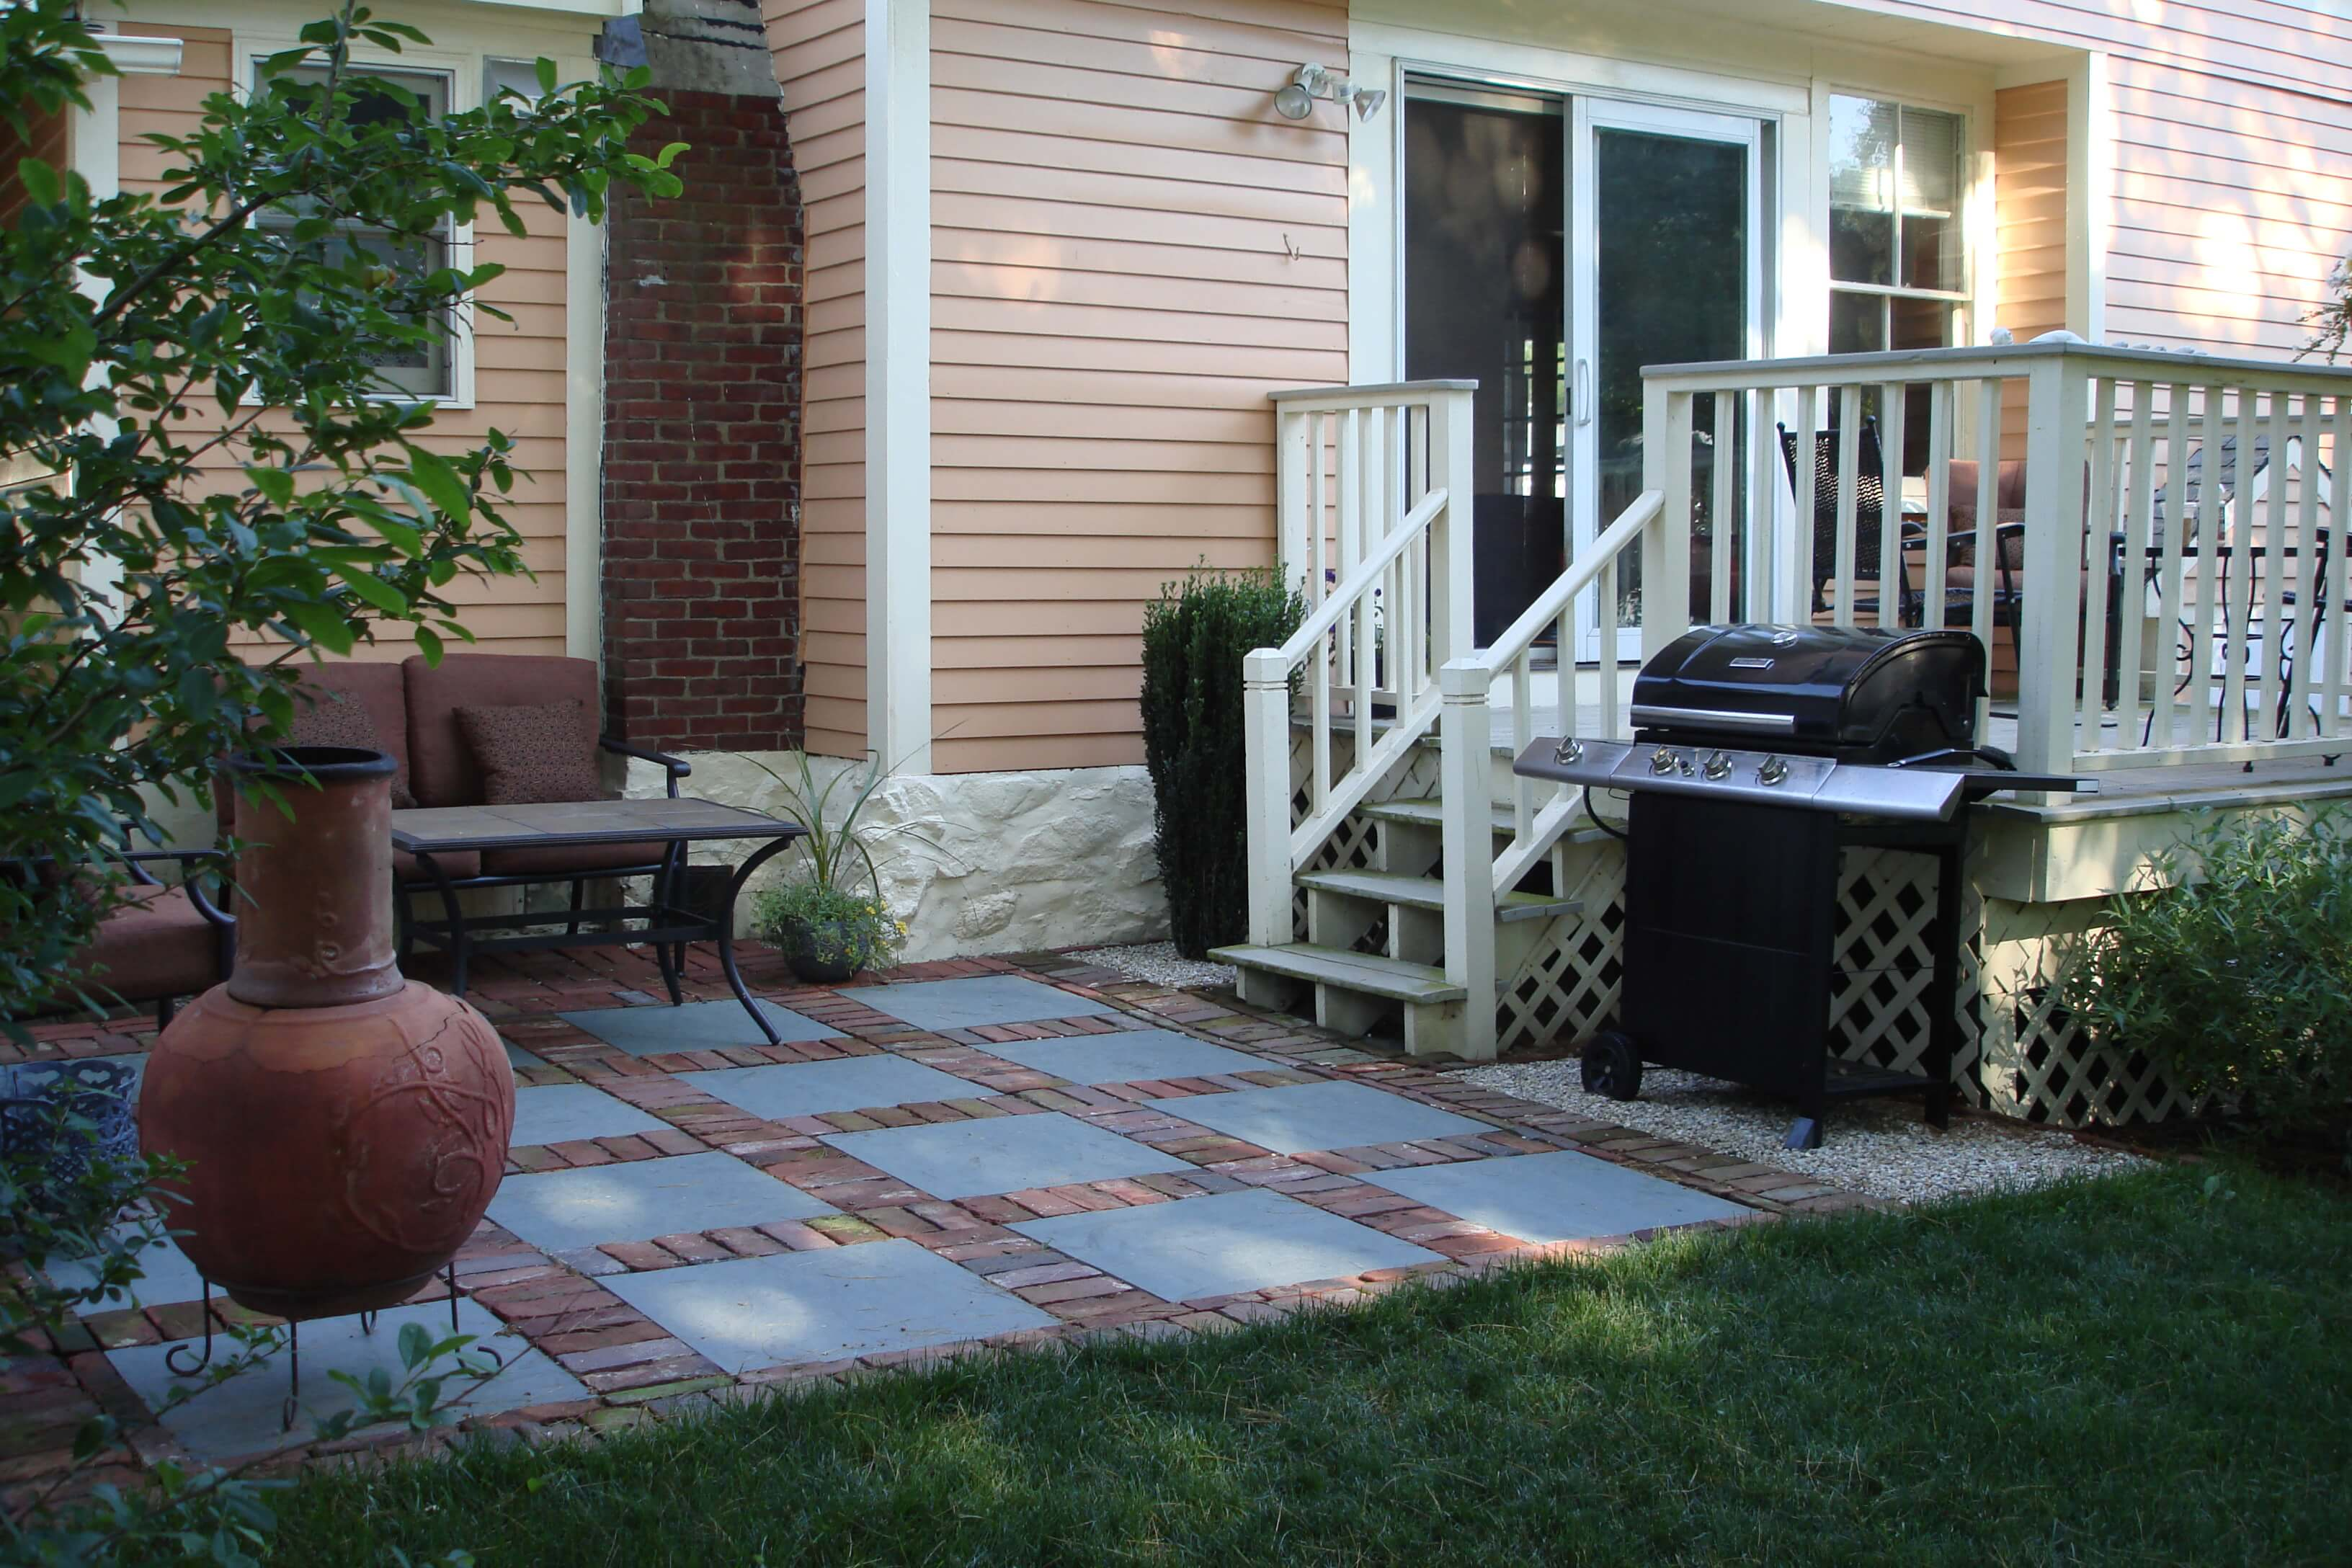 15+ Enhancing Backyard Patio Design Ideas For Small Spaces on Small Backyard Brick Patio Ideas  id=80014